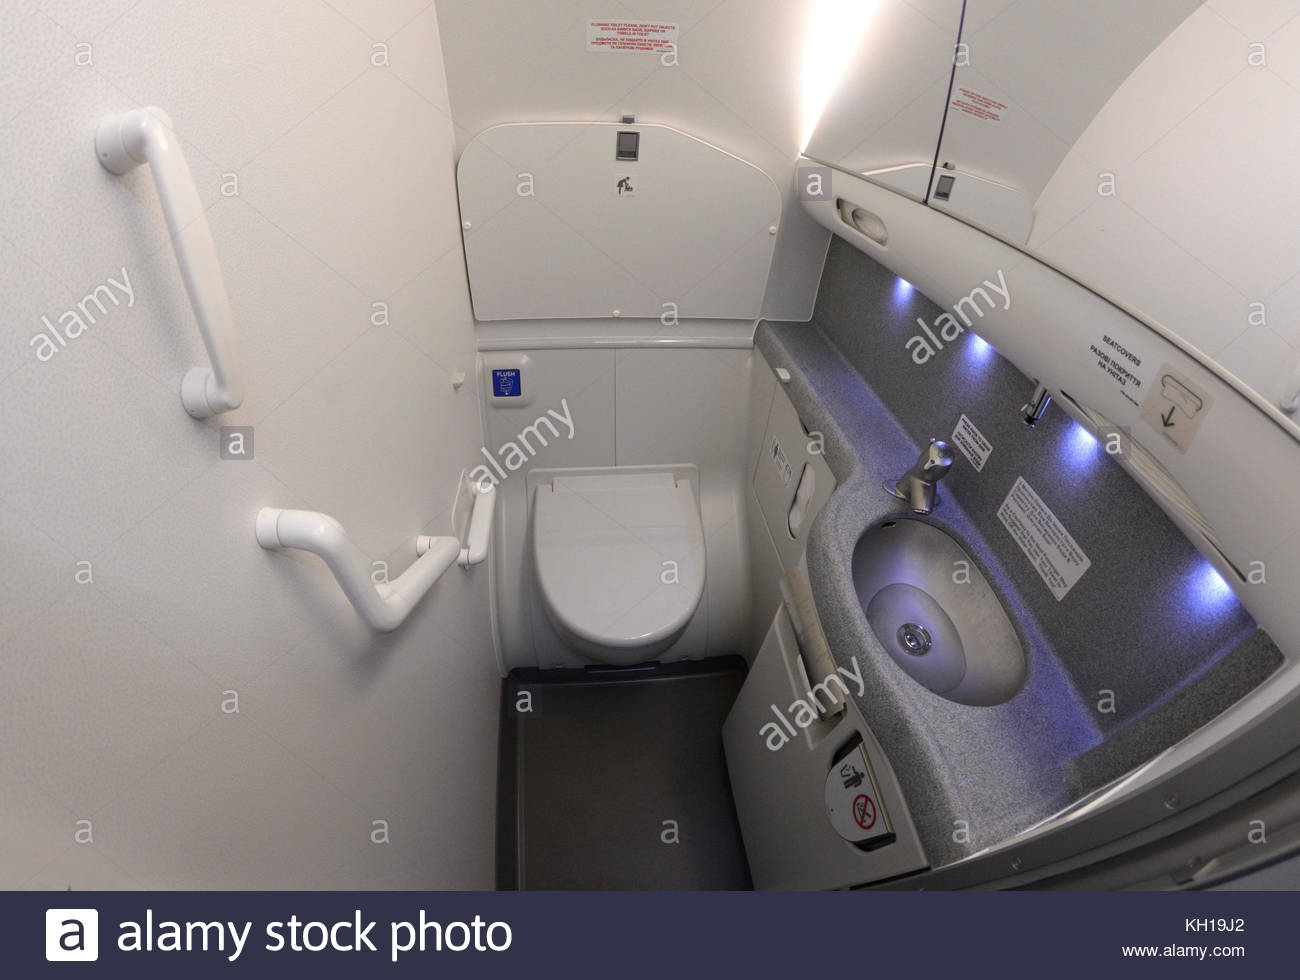 Bathroom of an aircraft Boeing 737-400. - Stock Image